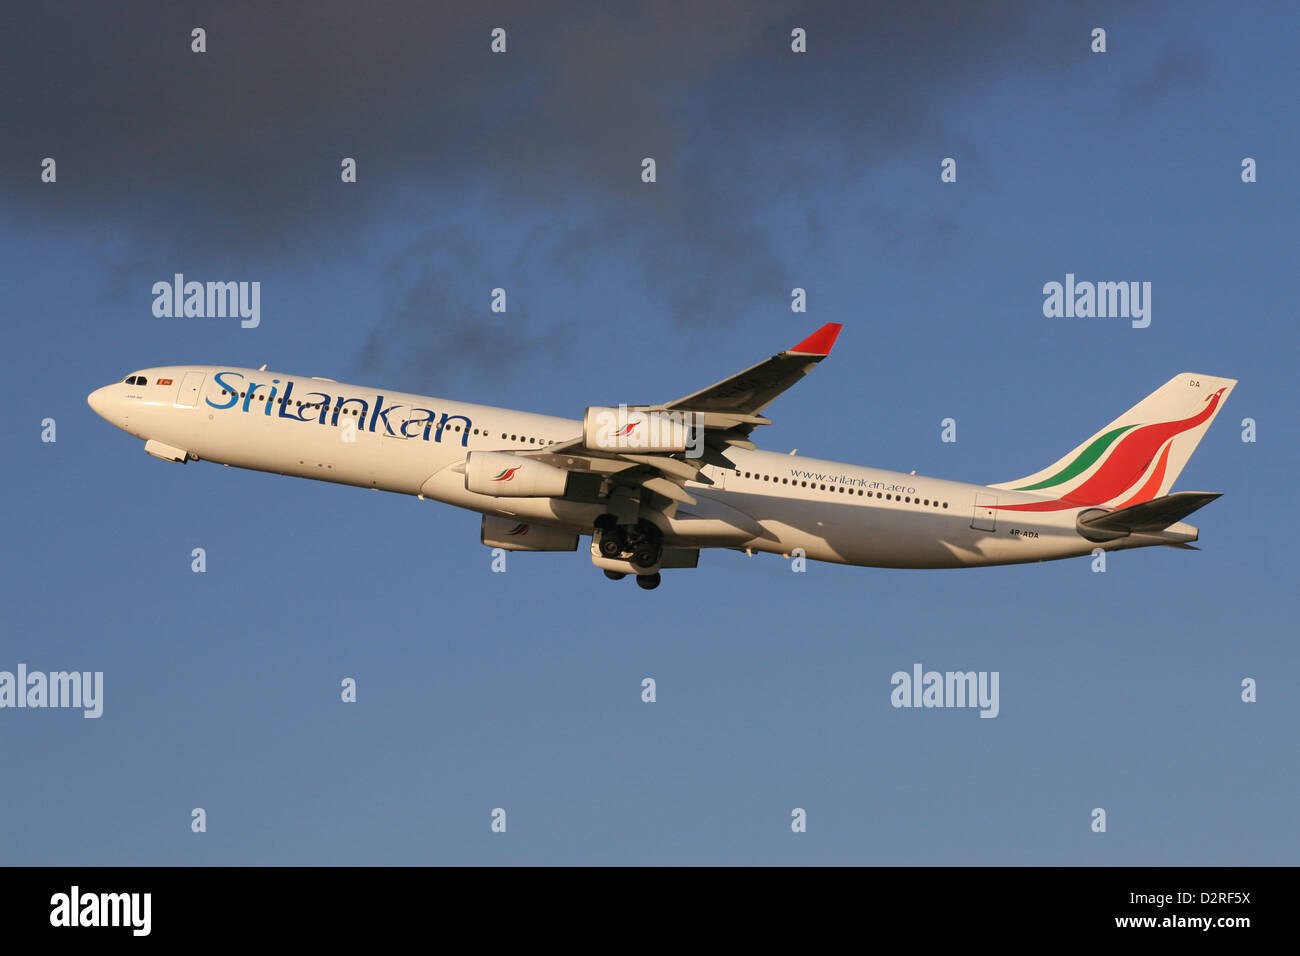 SRILANKAN AIRLINES A340 AIRBUS - Stock Image